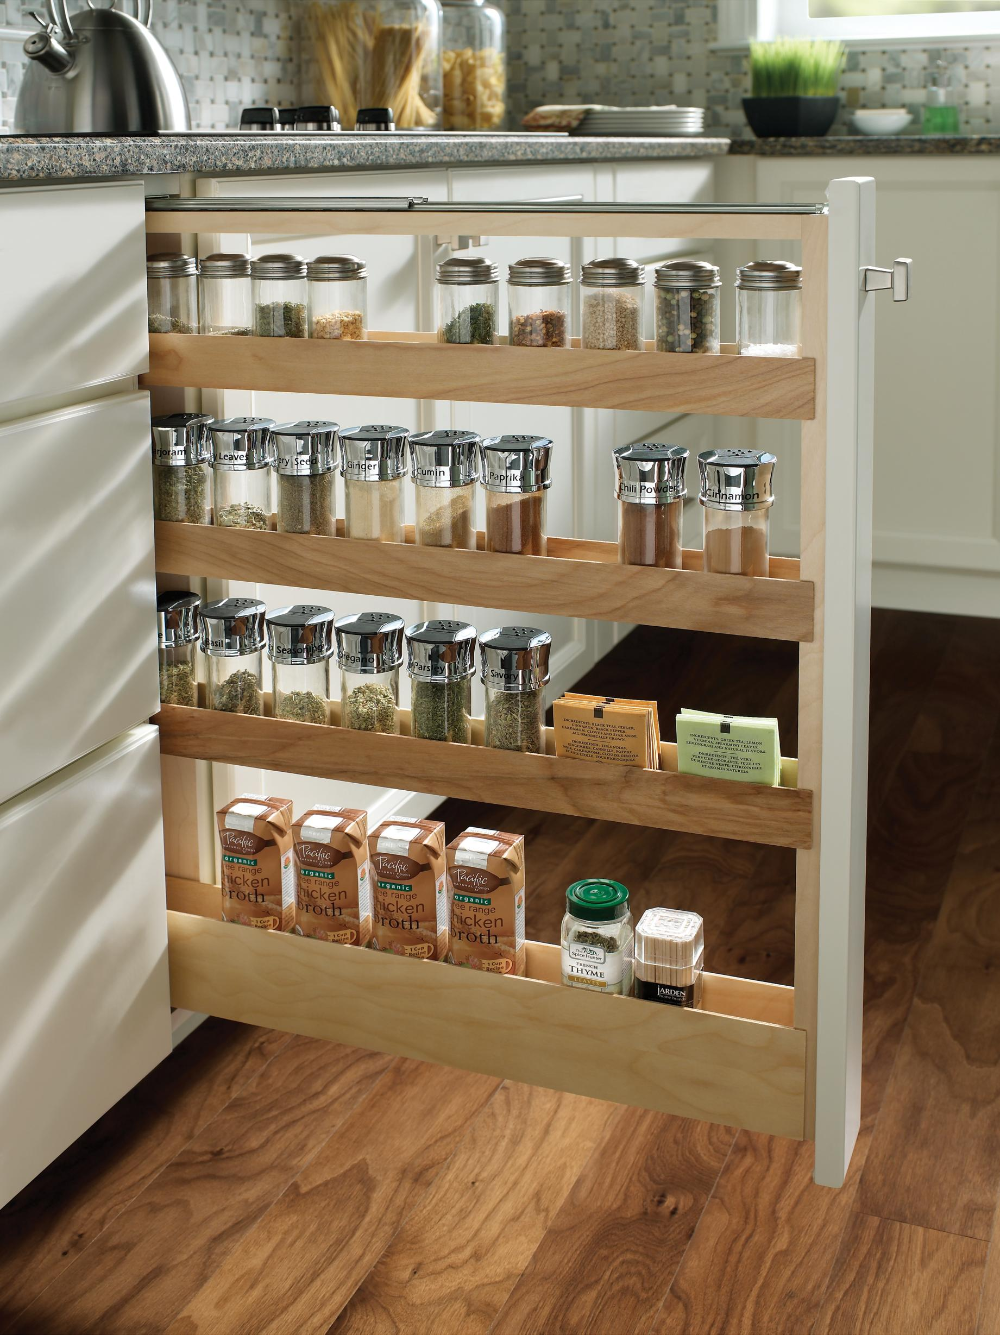 Yorktowne Cabinetry Pull Out Spice Rack In 2020 Kitchen Storage Rack Pull Out Spice Rack Clever Kitchen Storage